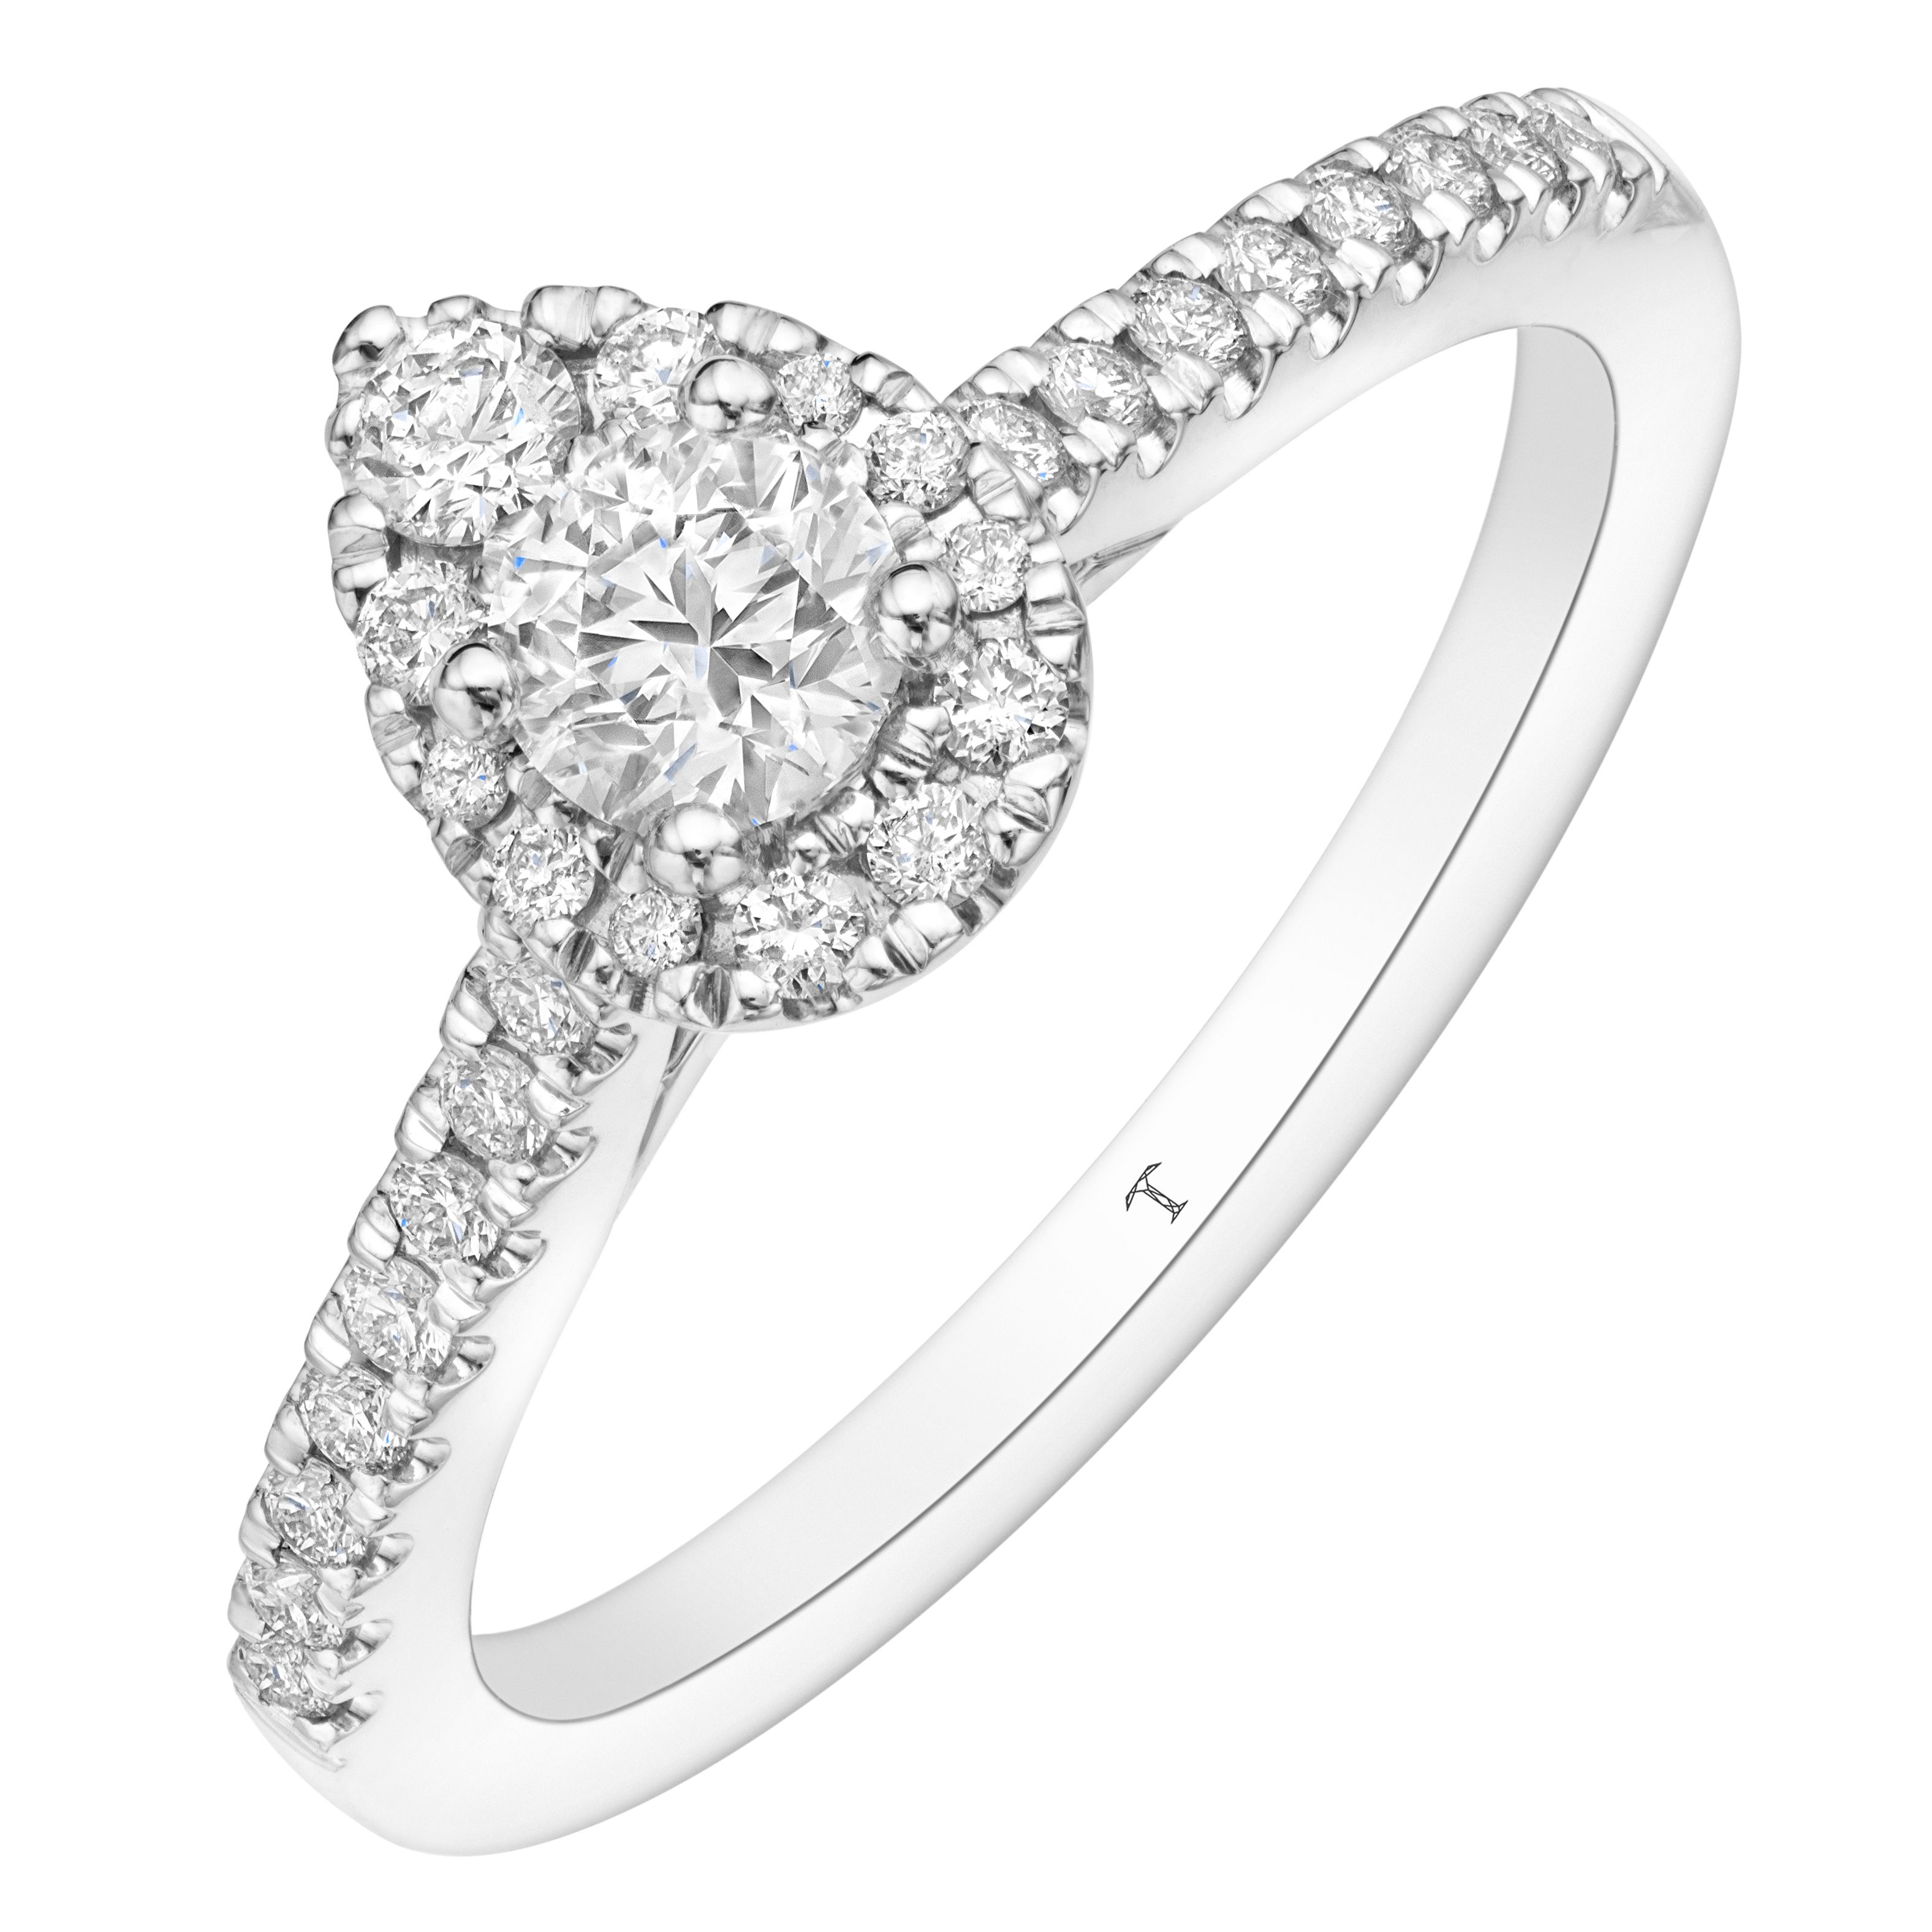 Tolkowsky 18ct White Gold 1/2ct Diamond Pear Halo Ring | The Throughout 2017 Sparkling Teardrop Halo Rings (View 14 of 25)